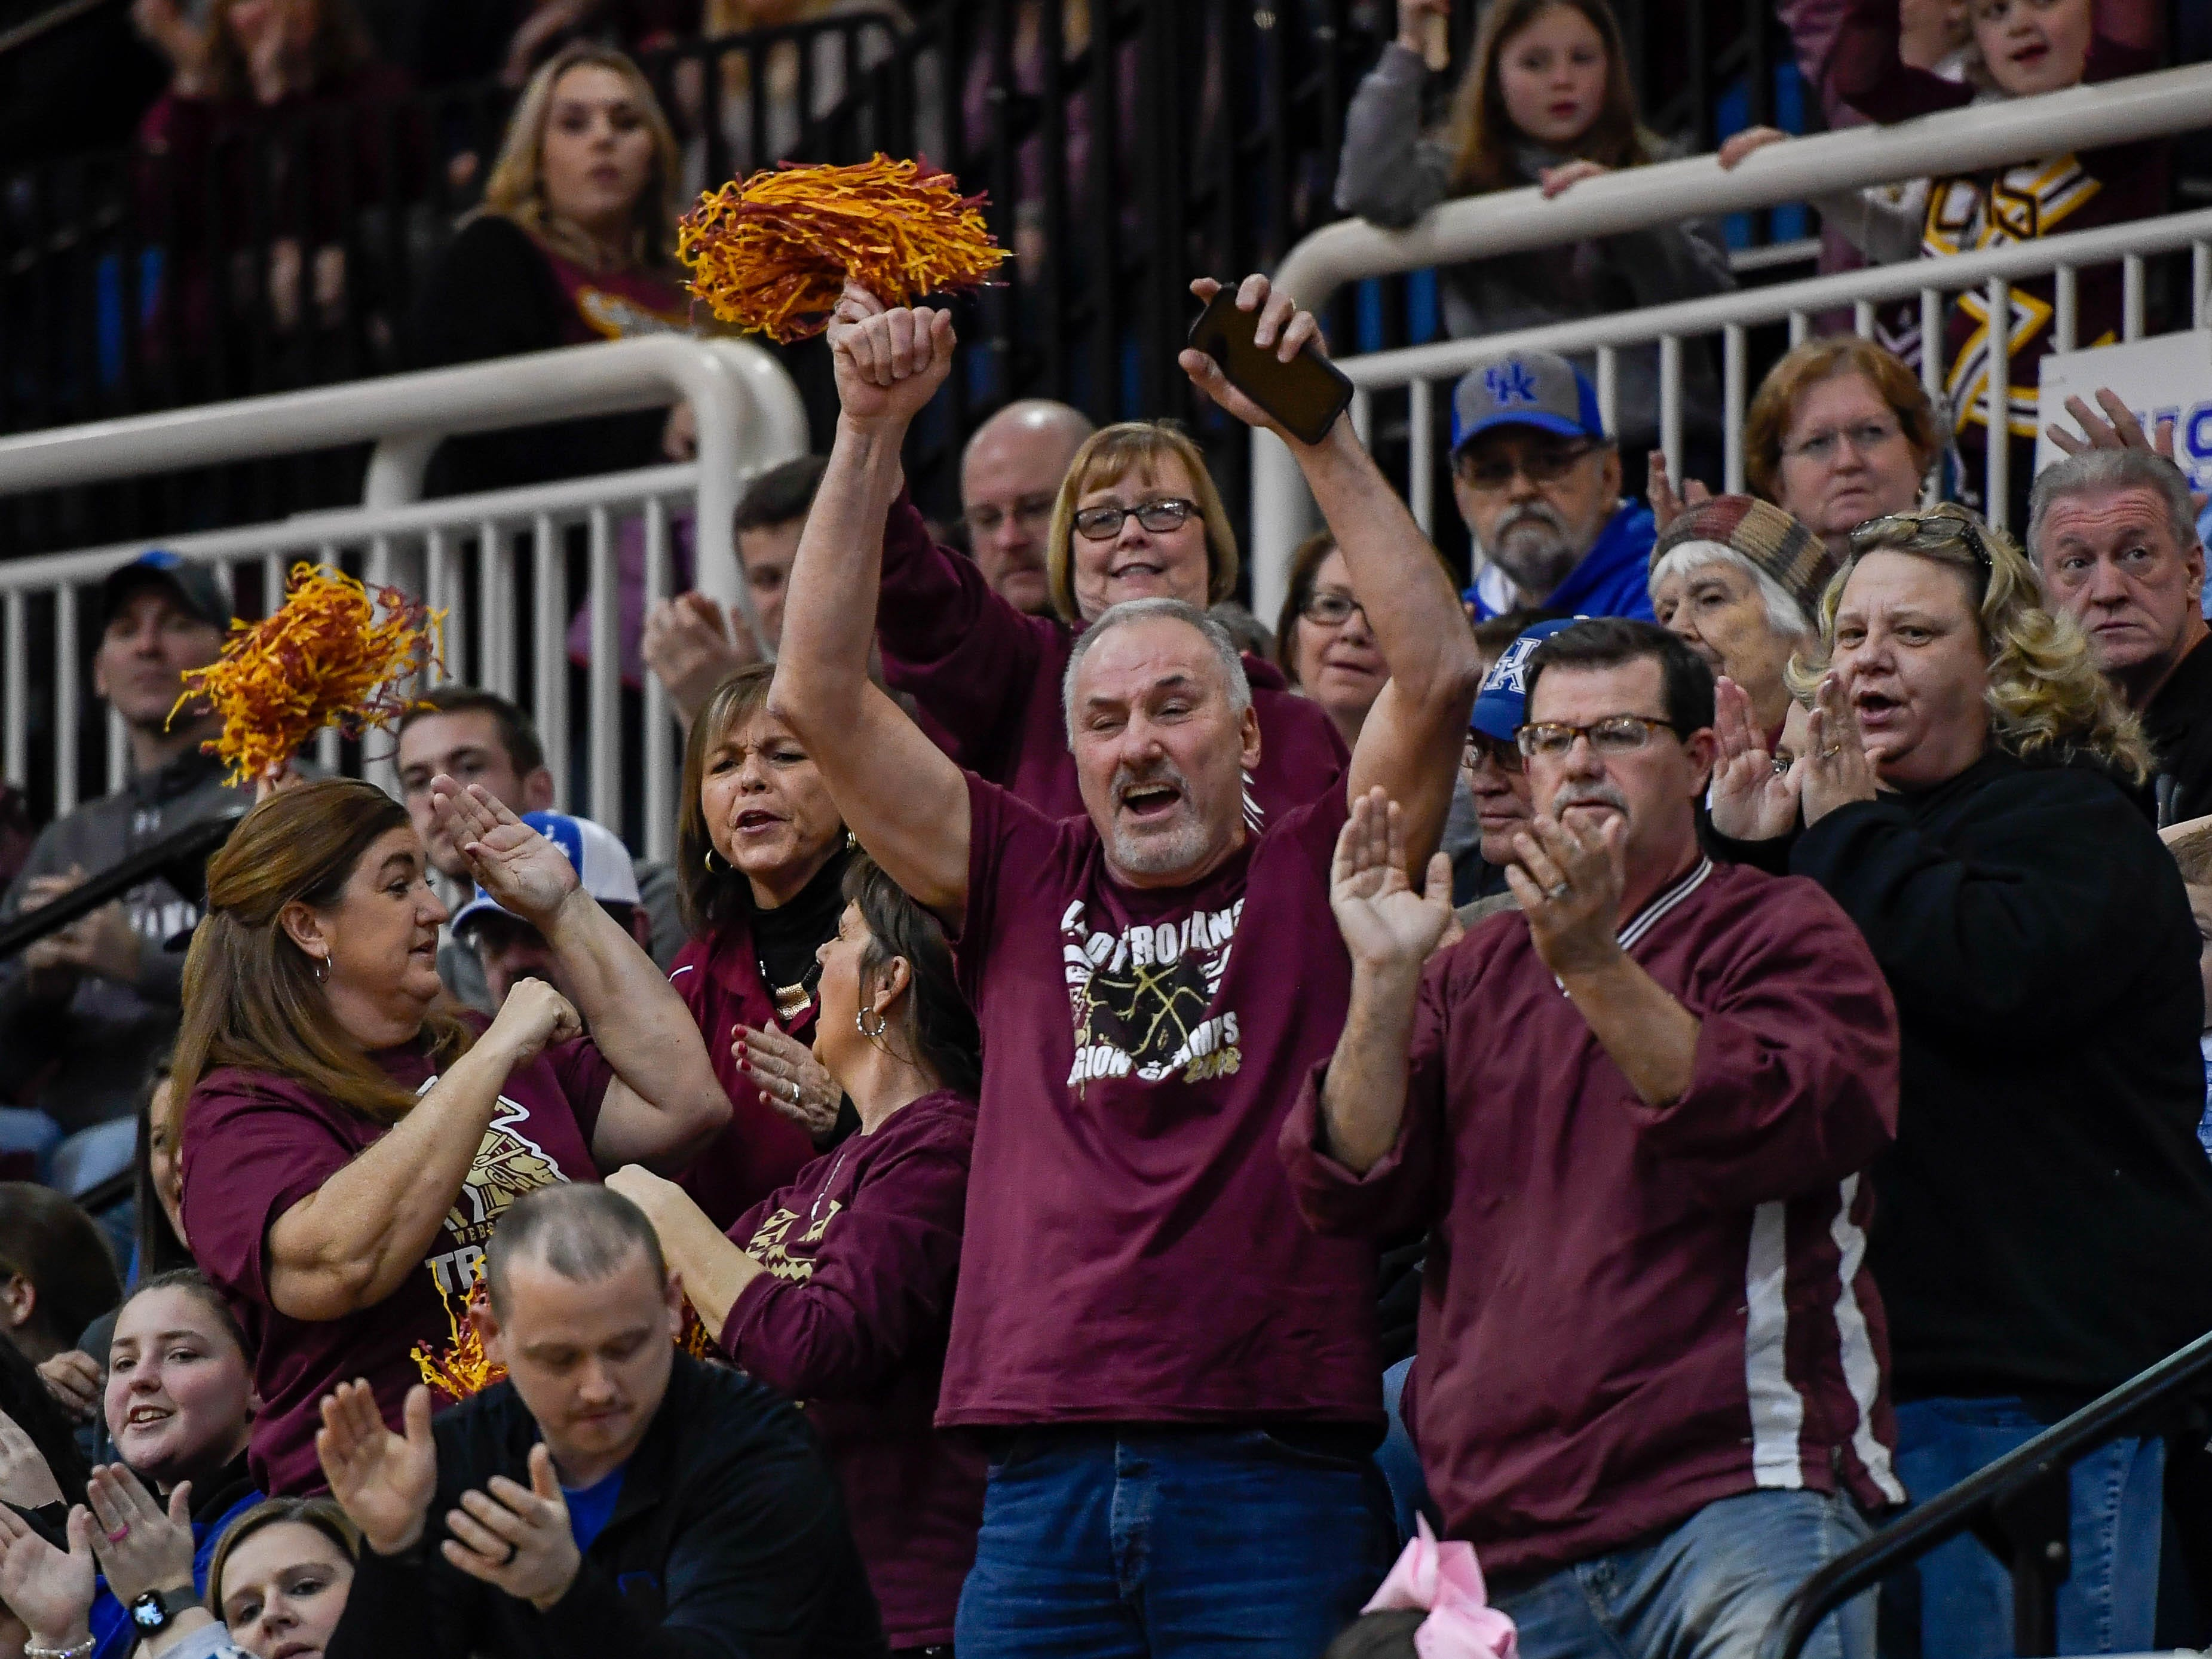 Fans cheer a Webster rally as the Webster County Lady Trojans play the Henderson County Colonels for the Girls Second Region Championship at the Rocket Arena in Marion Tuesday, March 5, 2019.